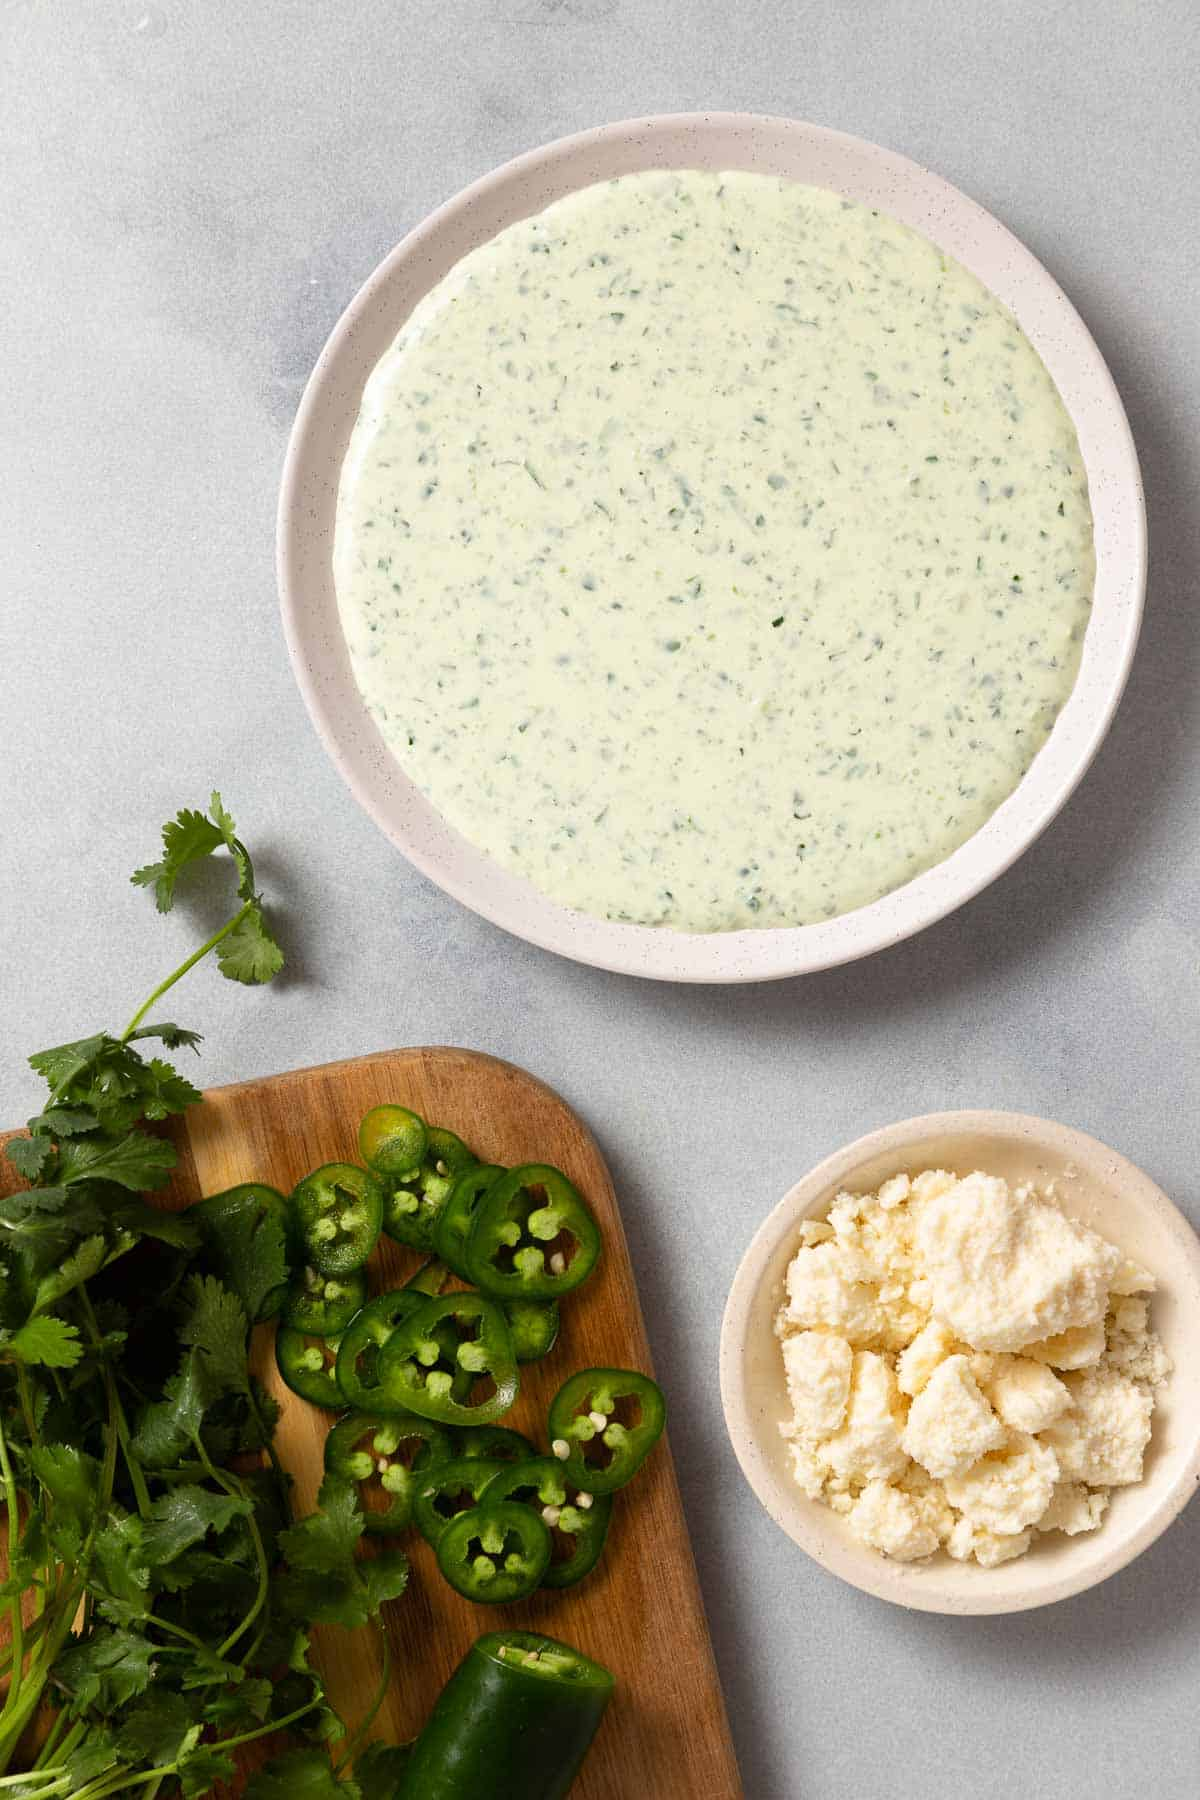 jalapeno dip in a white bowl next to chopped jalapenos, herbs, and cheese